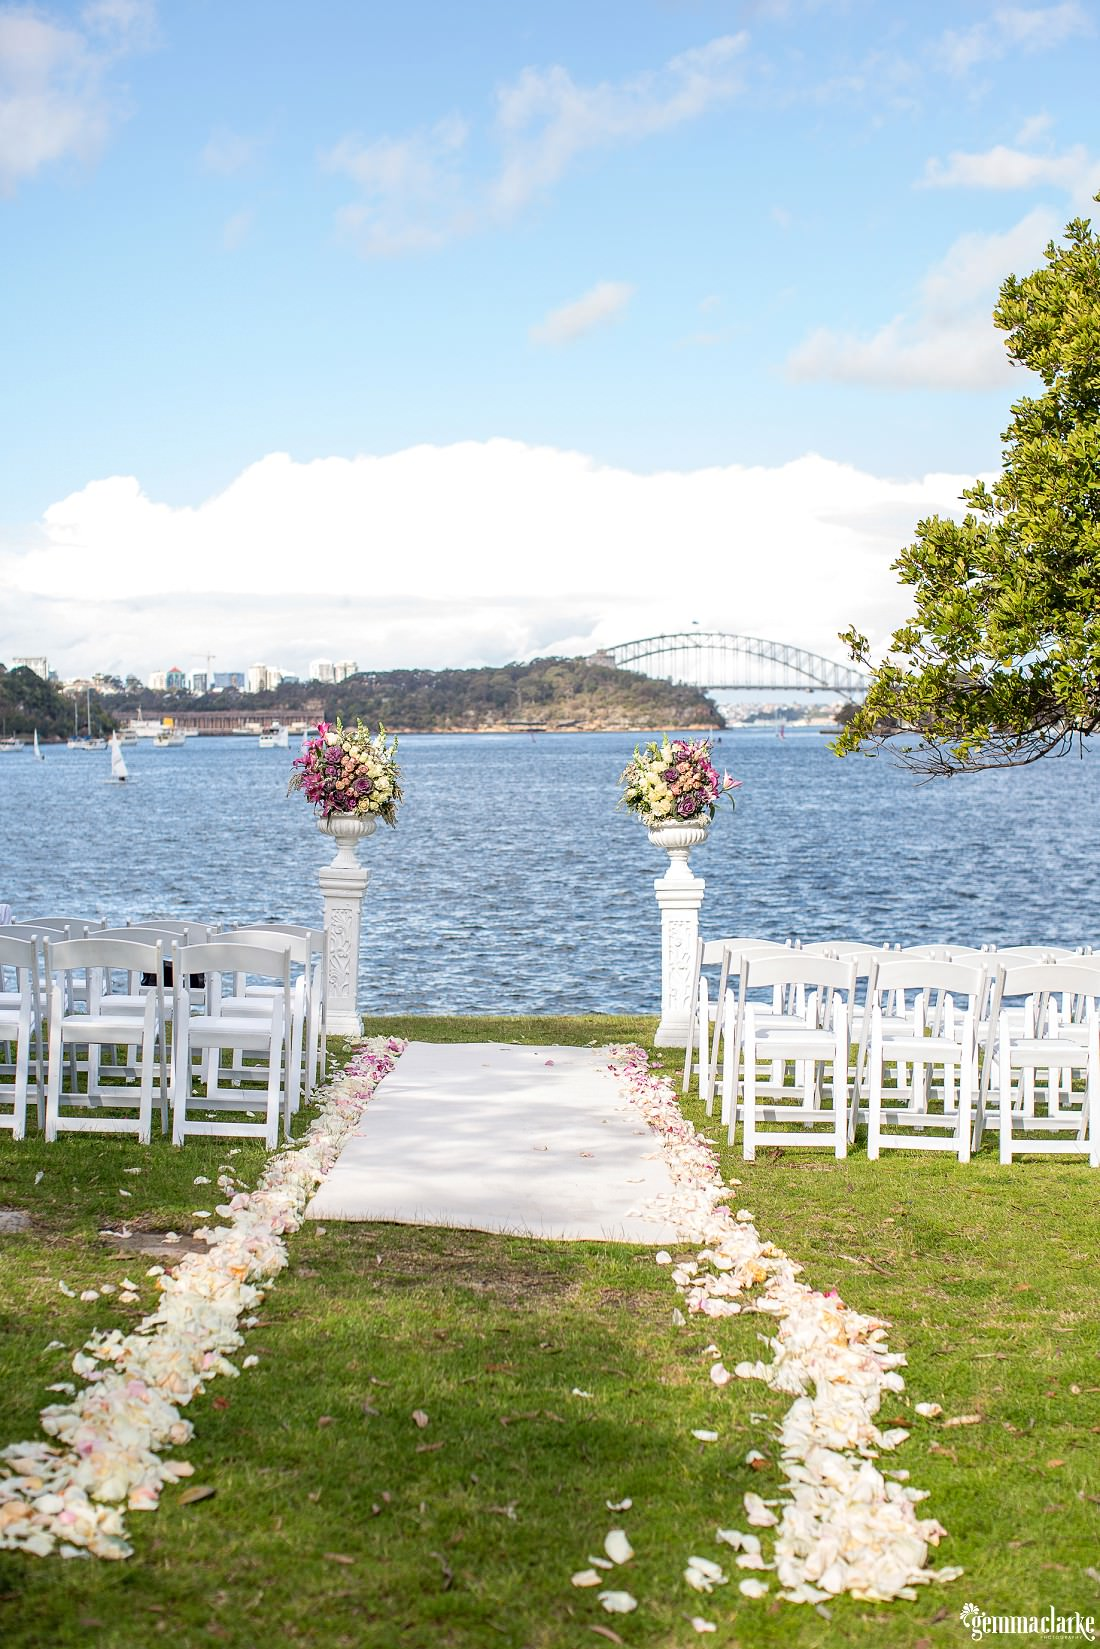 Outdoor wedding ceremony setup by the water with the Sydney Harbour Bridge in the background - Woolwich Wedding